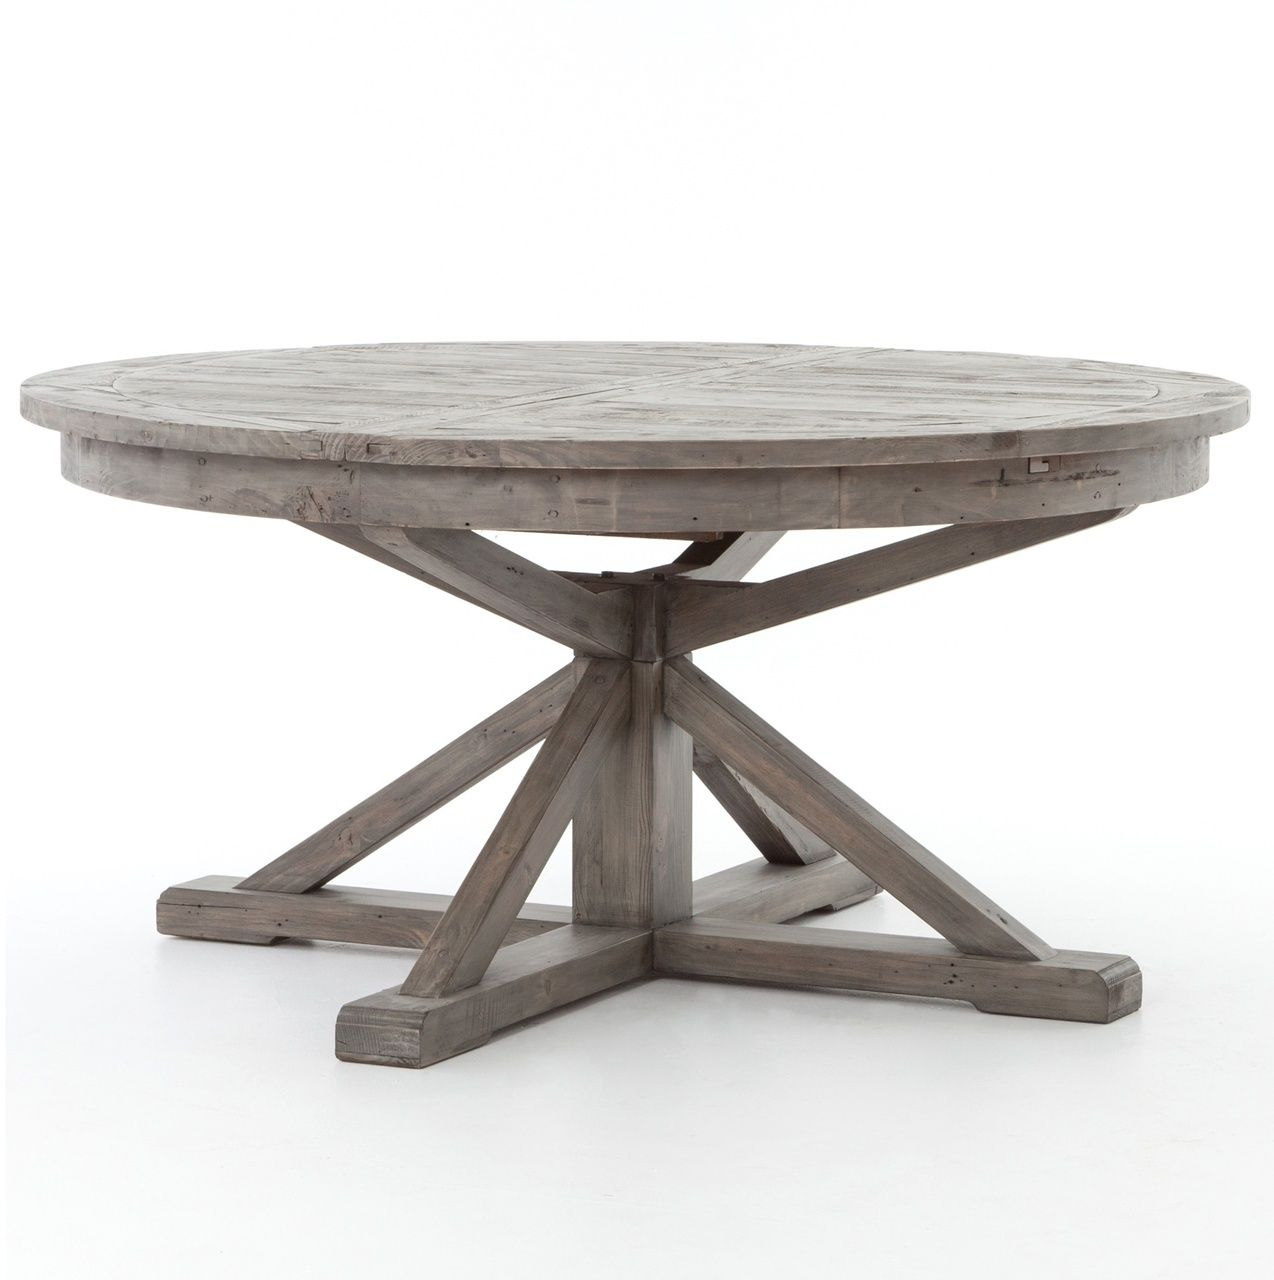 "Cintra Reclaimed Wood Extending Round Dining Table 63"" Gray Regarding Current Gray Wash Benchwright Extending Dining Tables (View 6 of 25)"